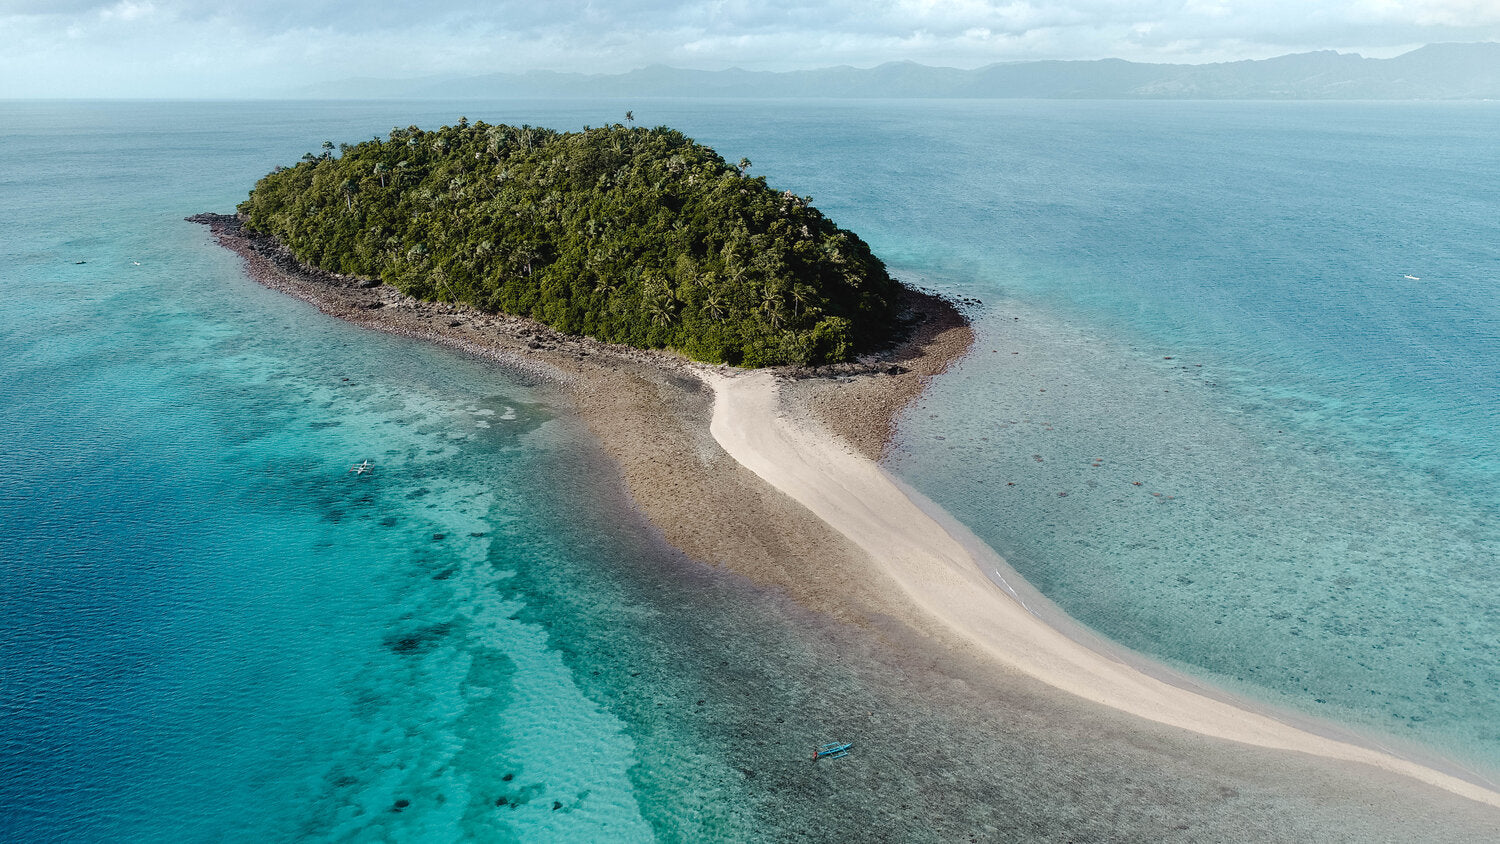 Drone shot of Bon Bon beach in Romblon, Philippines